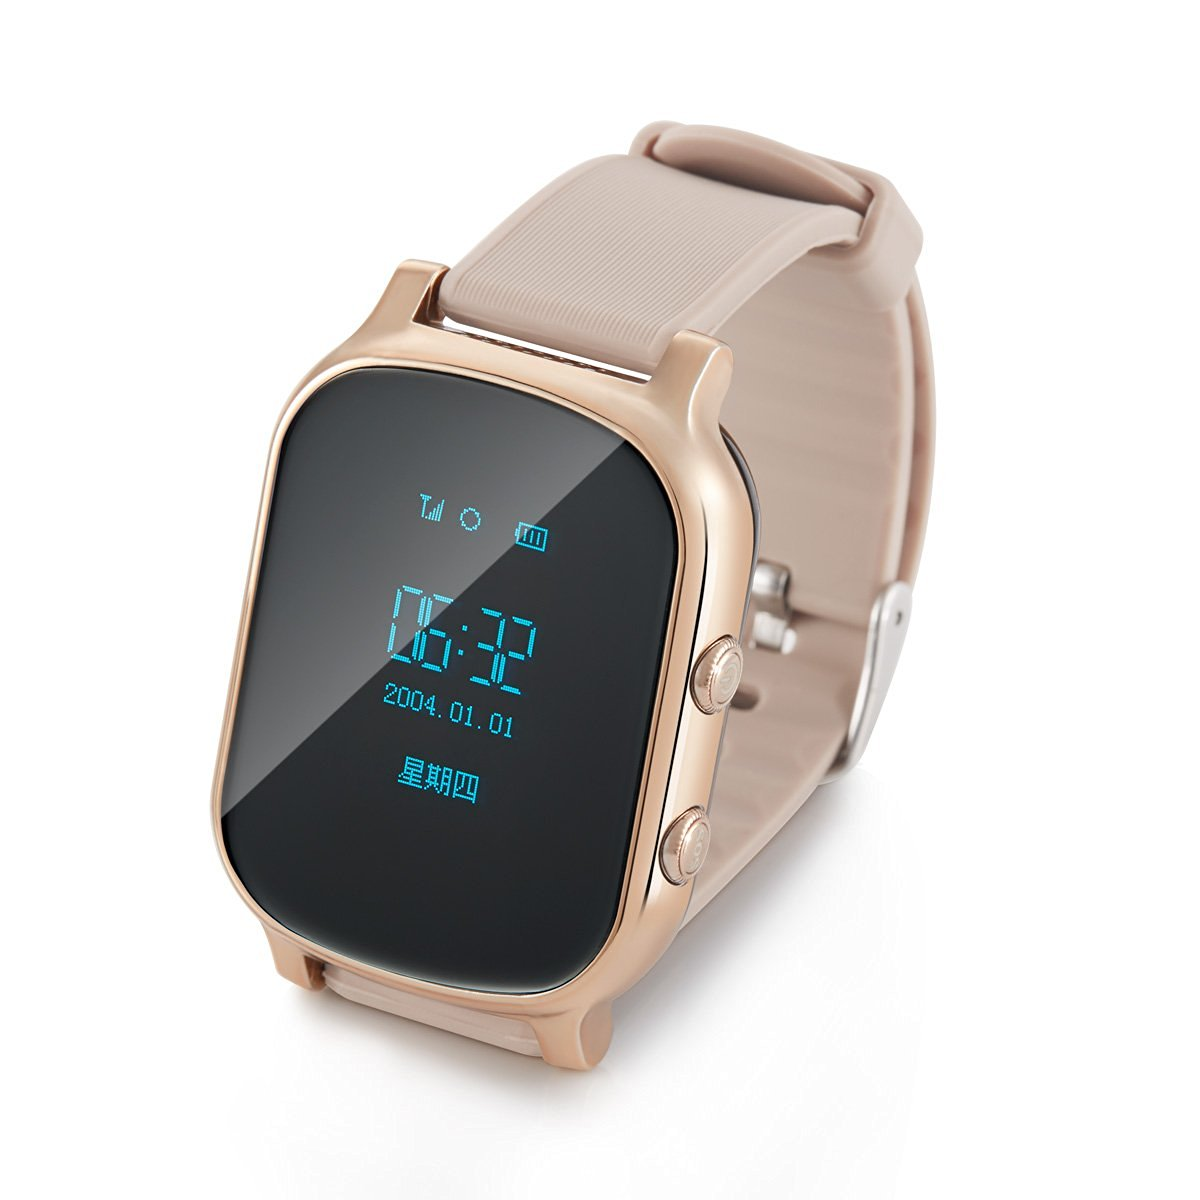 Generic Personal Locator Real Time GPS Tracker Watch for Kids Baby Adults Elderly People Child Smart SIM Watch Children Bracelet with SOS SMS Map GSM GPS Tracking Device for IOS Android Phone (Gold)